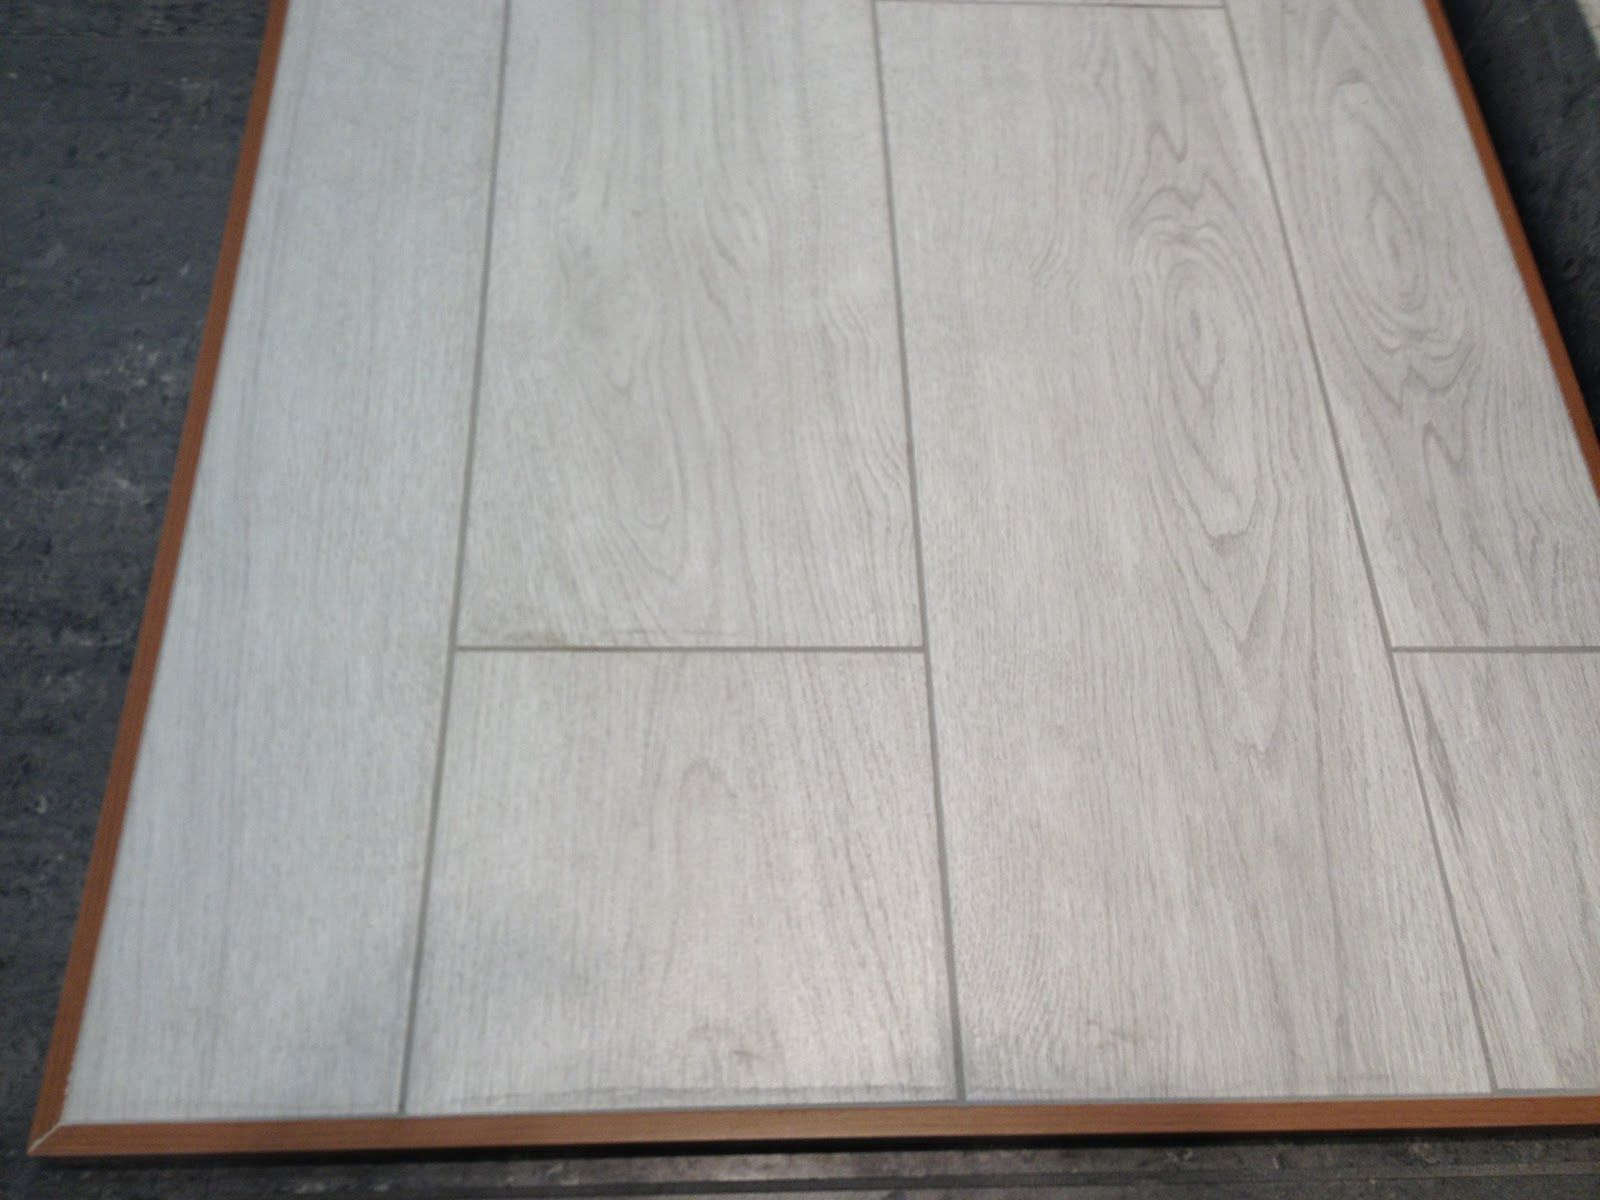 Decoration ideas exciting white natural wood look tile flooring for decoration ideas exciting white natural wood look tile flooring for bathroom floor or oudoor room dailygadgetfo Gallery